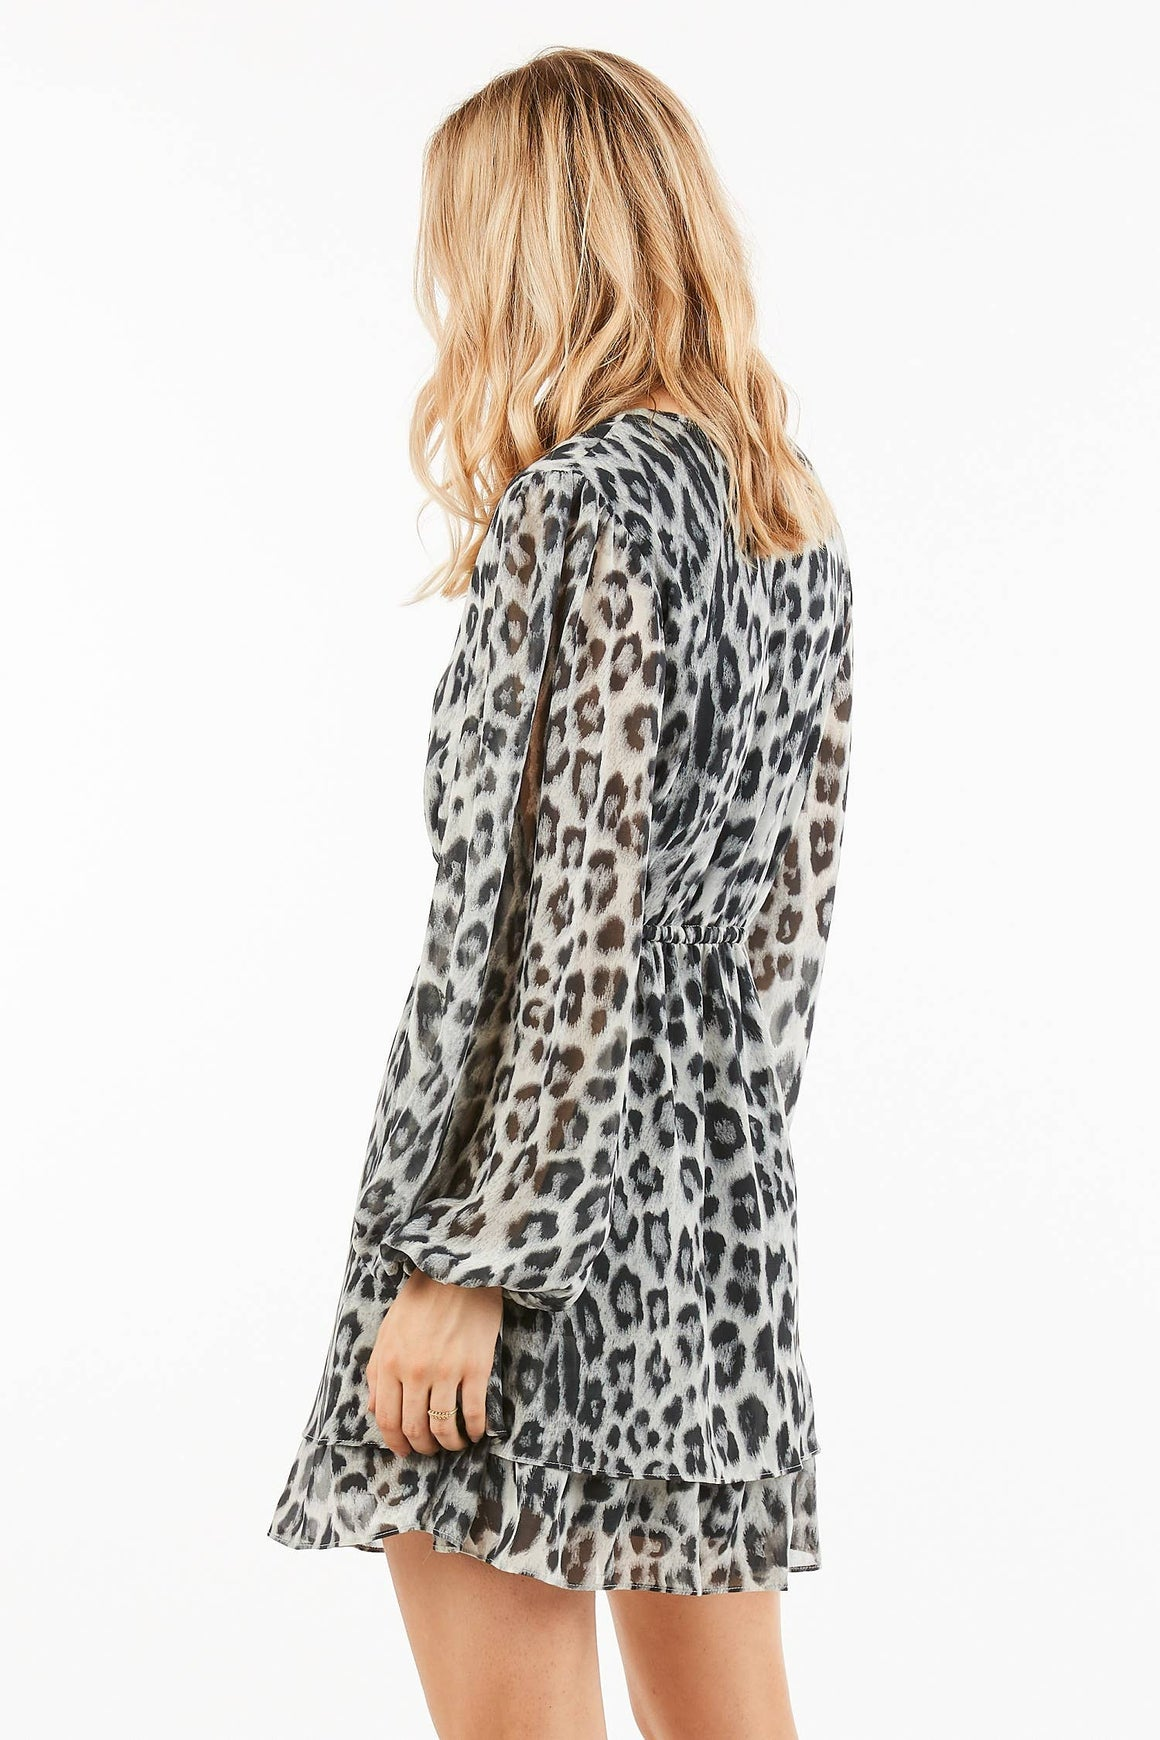 Spot Perfection Cheetah Dress-Dresses-Max & Riley-Max & Riley